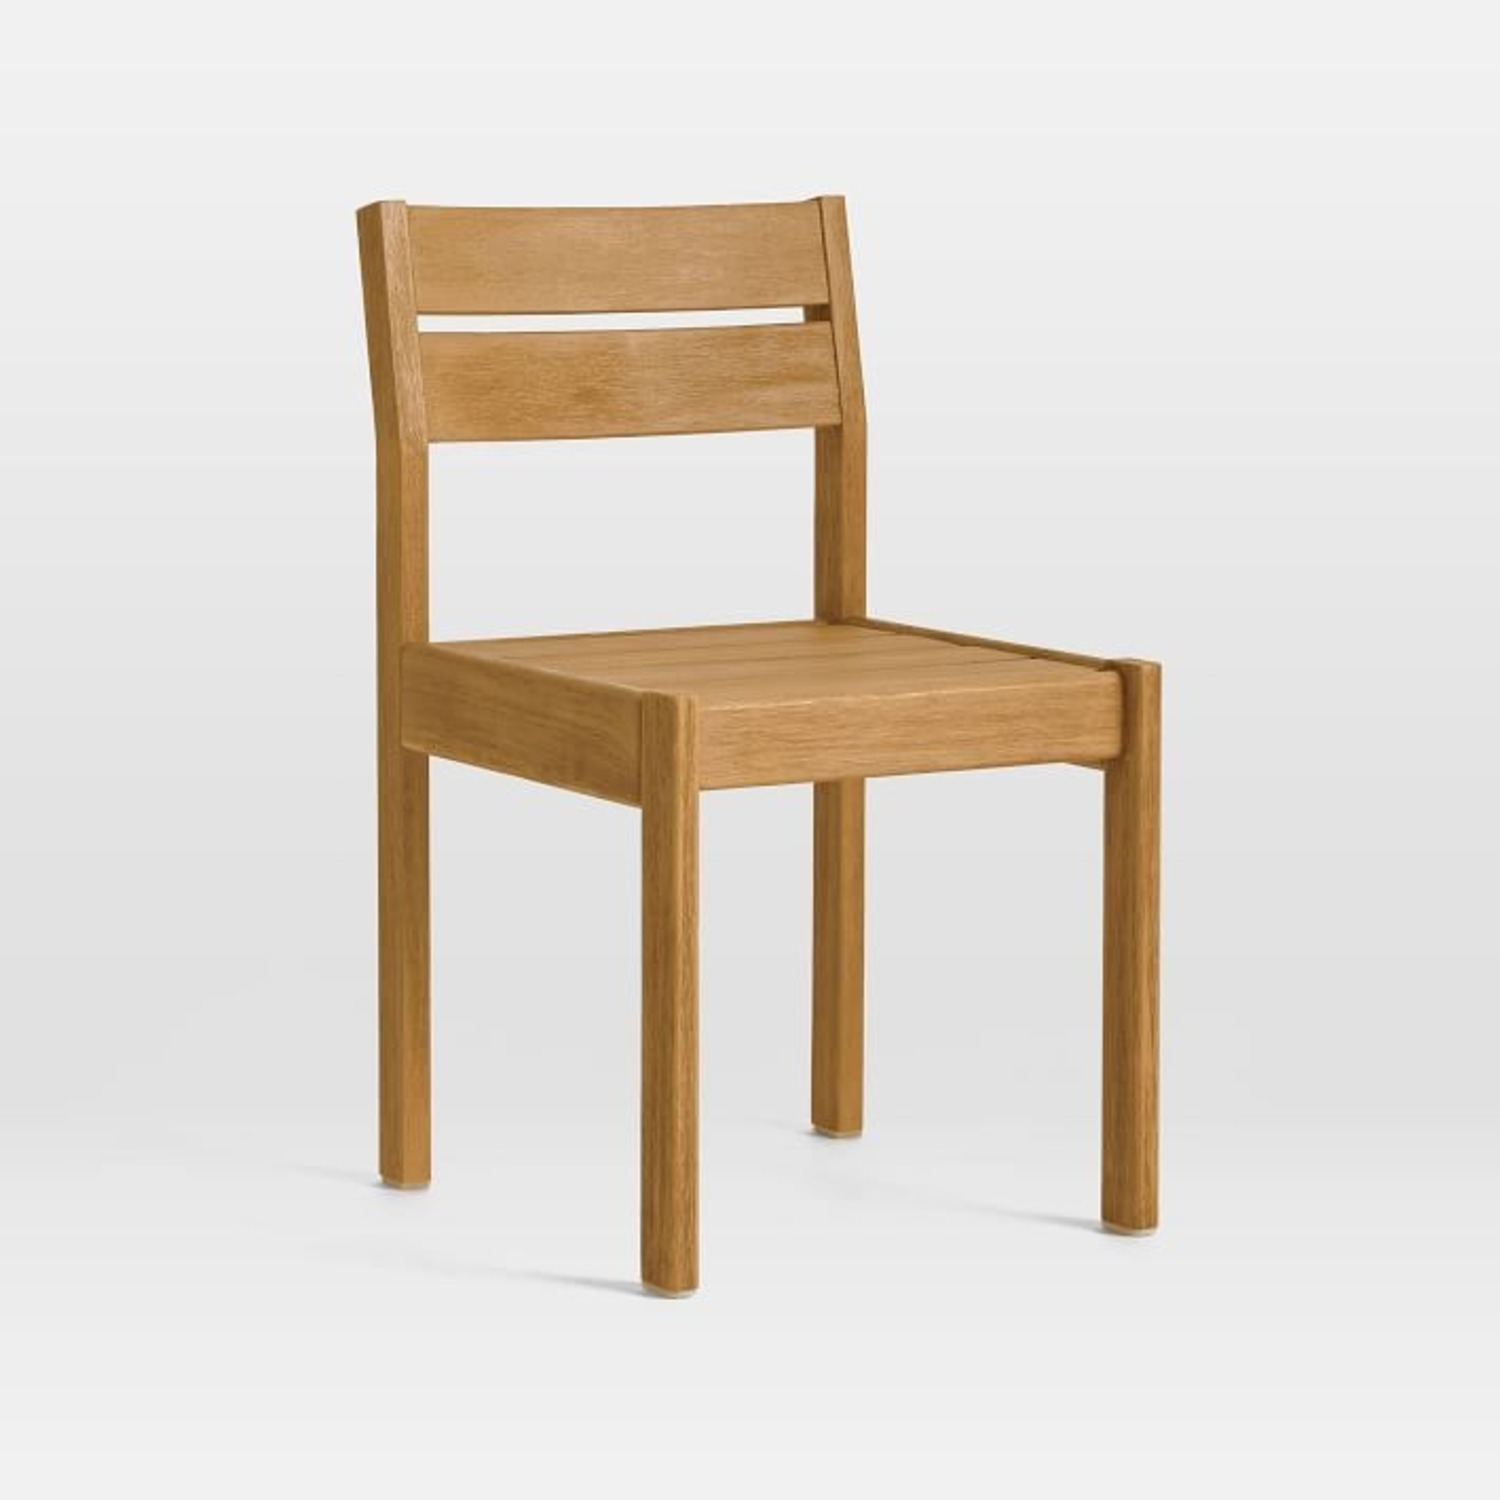 West Elm Playa Outdoor Dining Chair - image-1